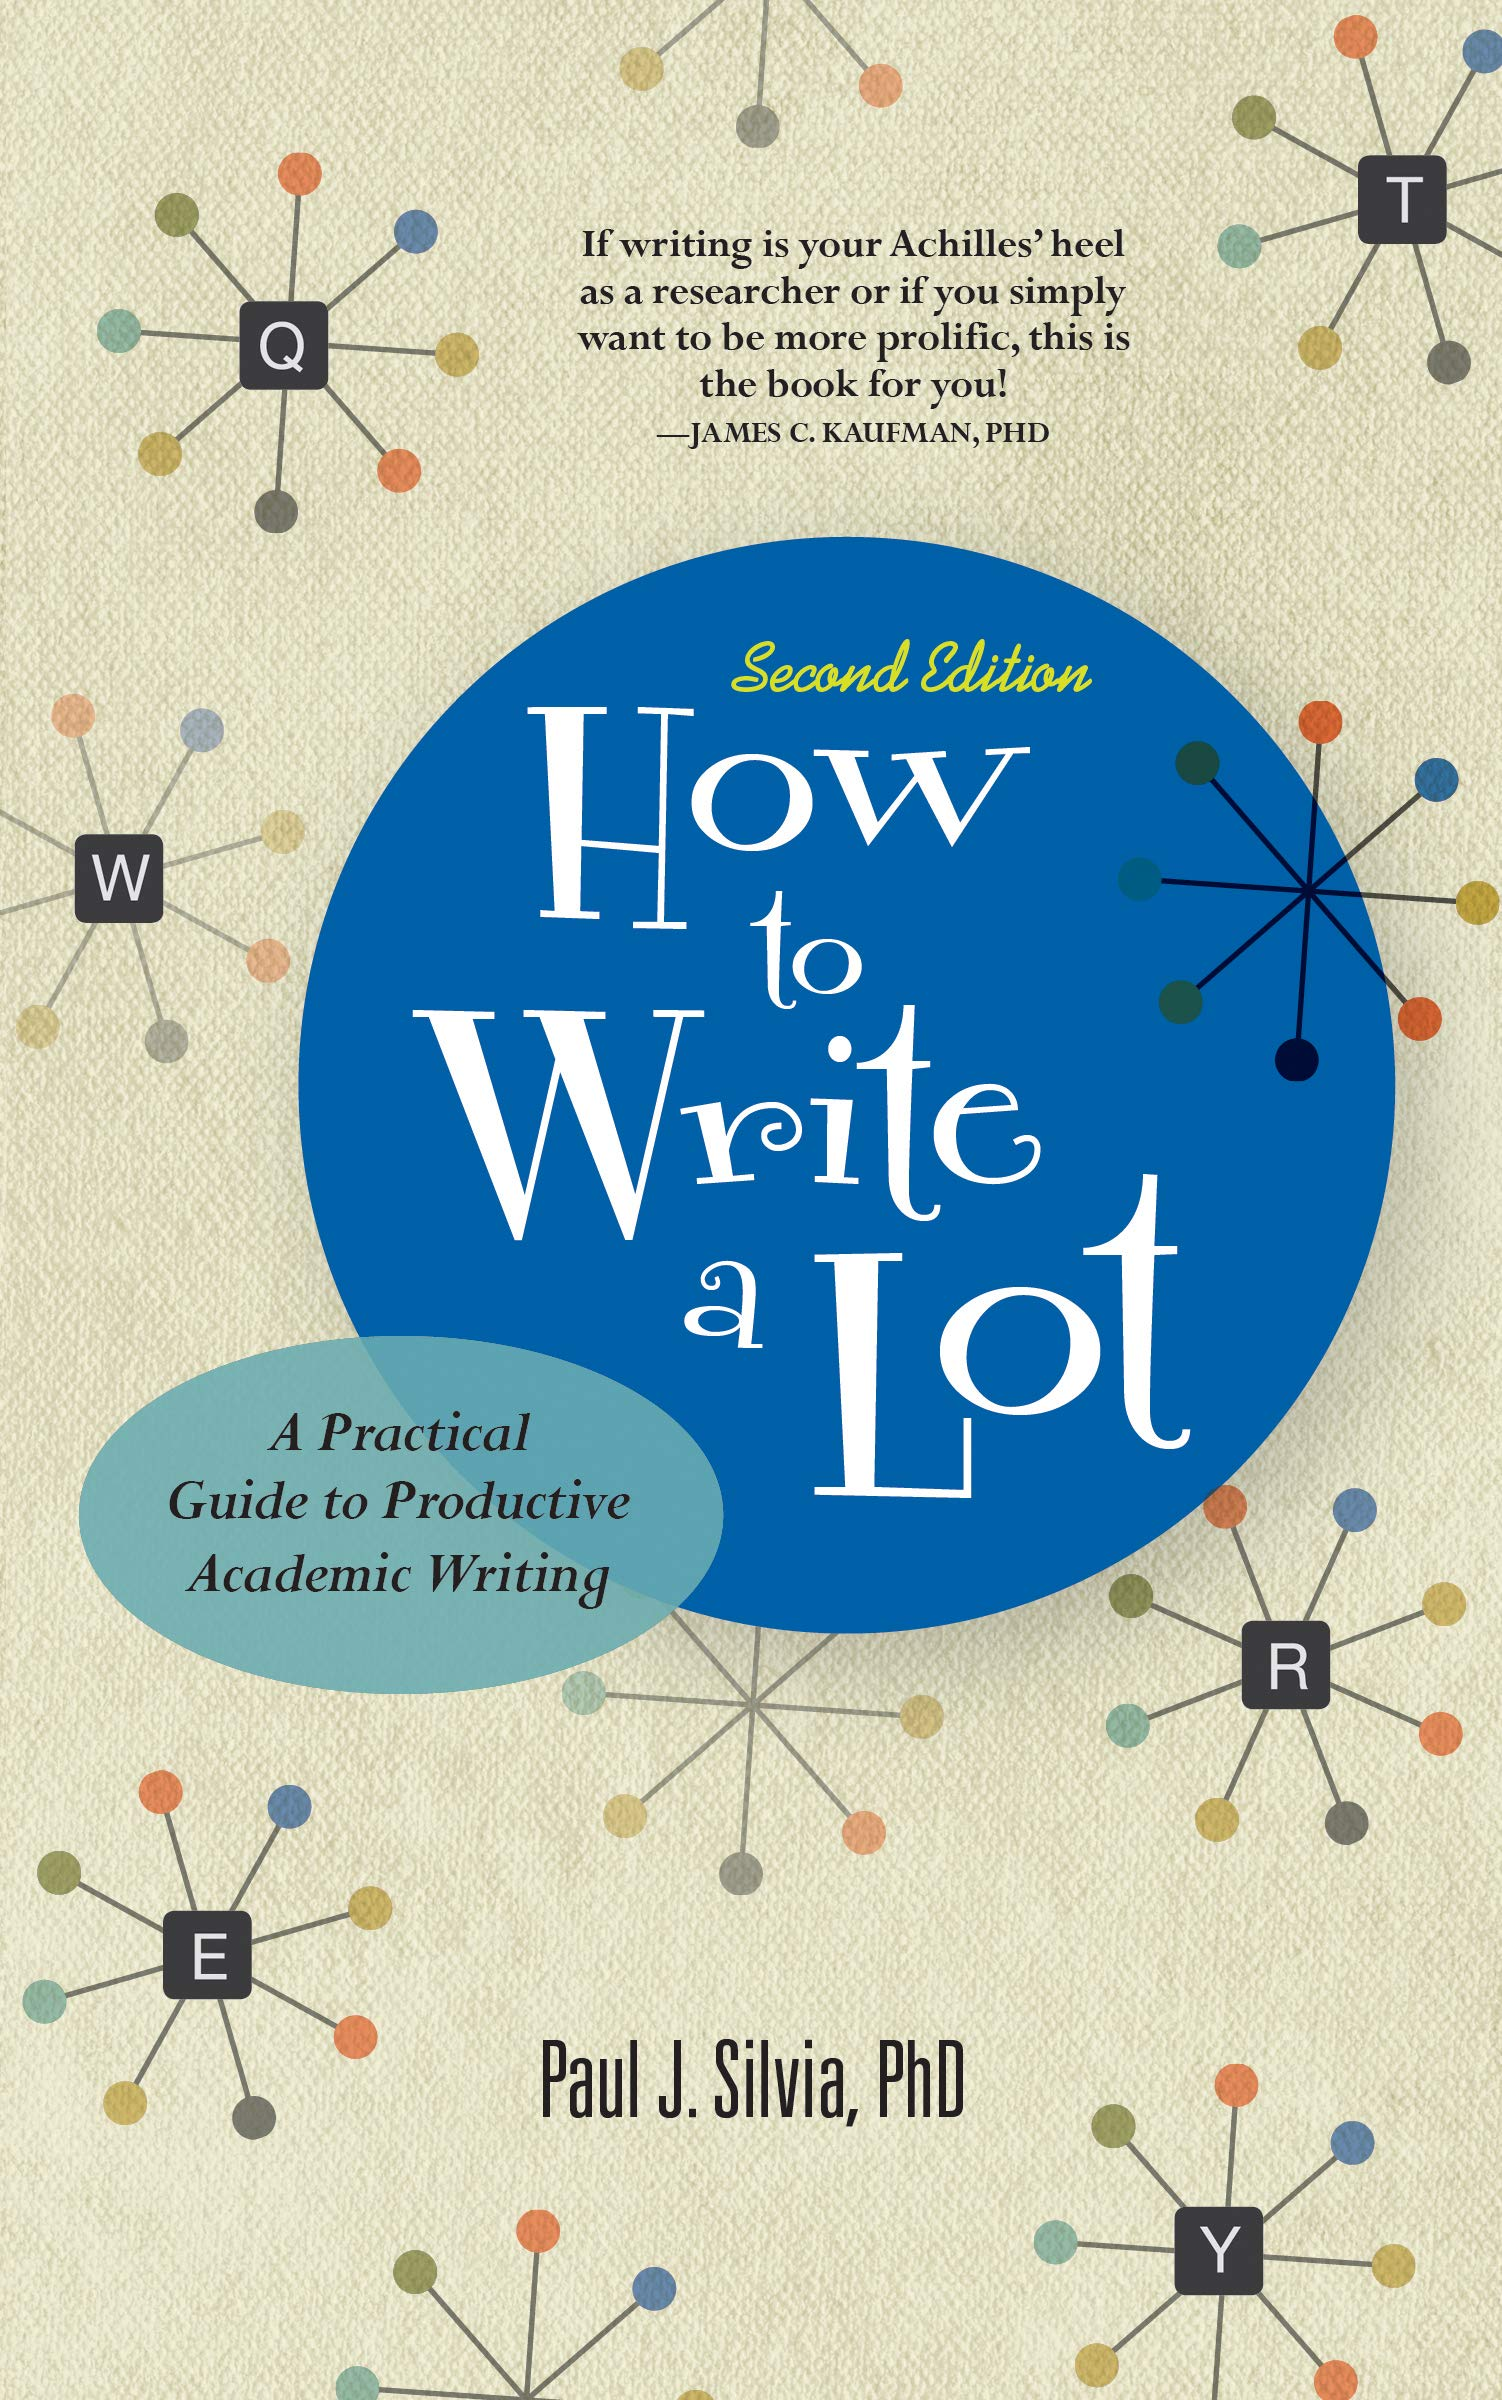 how-to-write-a-lot-a-practical-guide-to-productive-academic-writing-lifetools-books-for-the-general-public